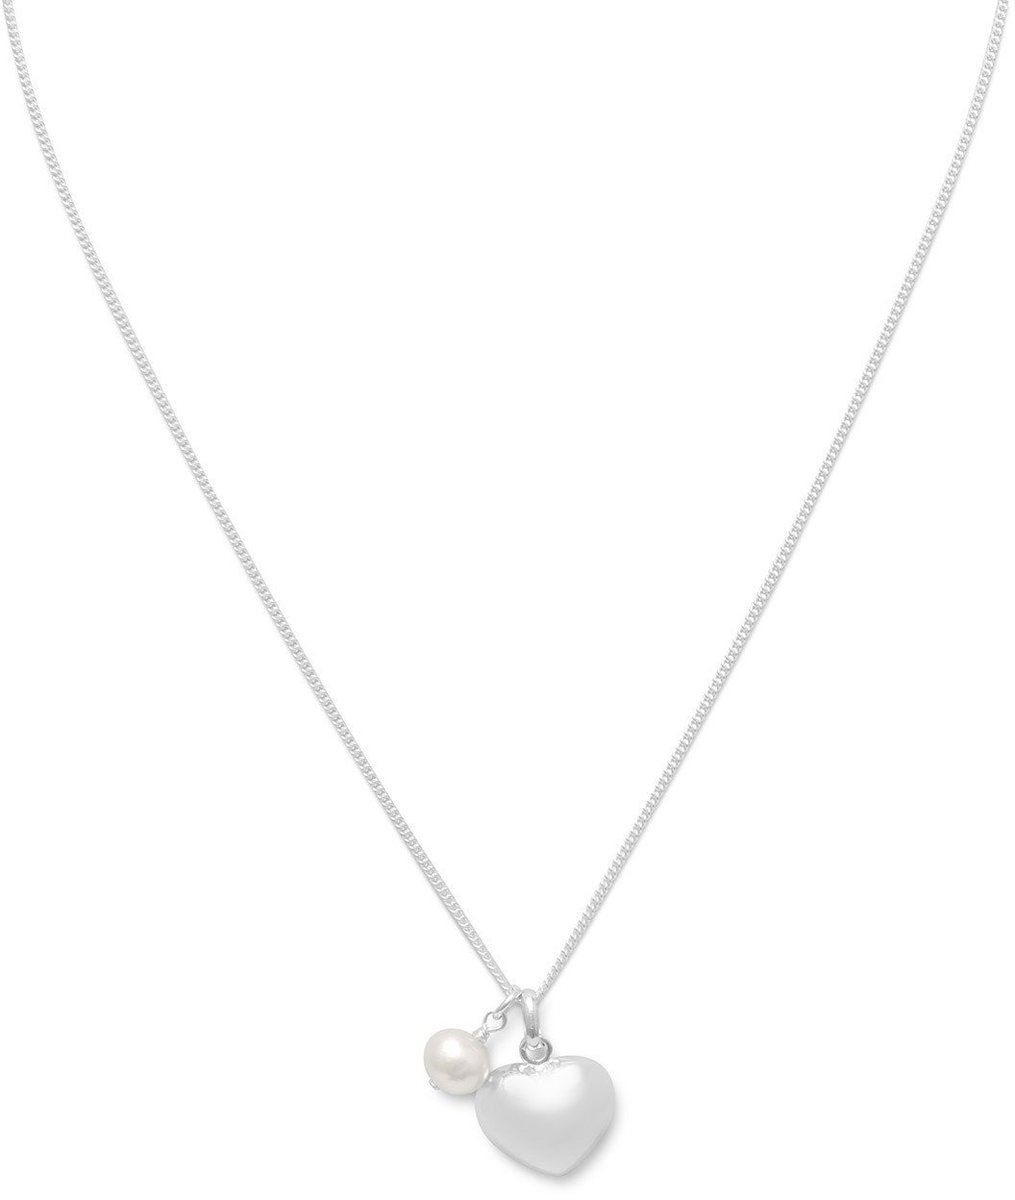 "16"" Multicharm Necklace 925 Sterling Silver"